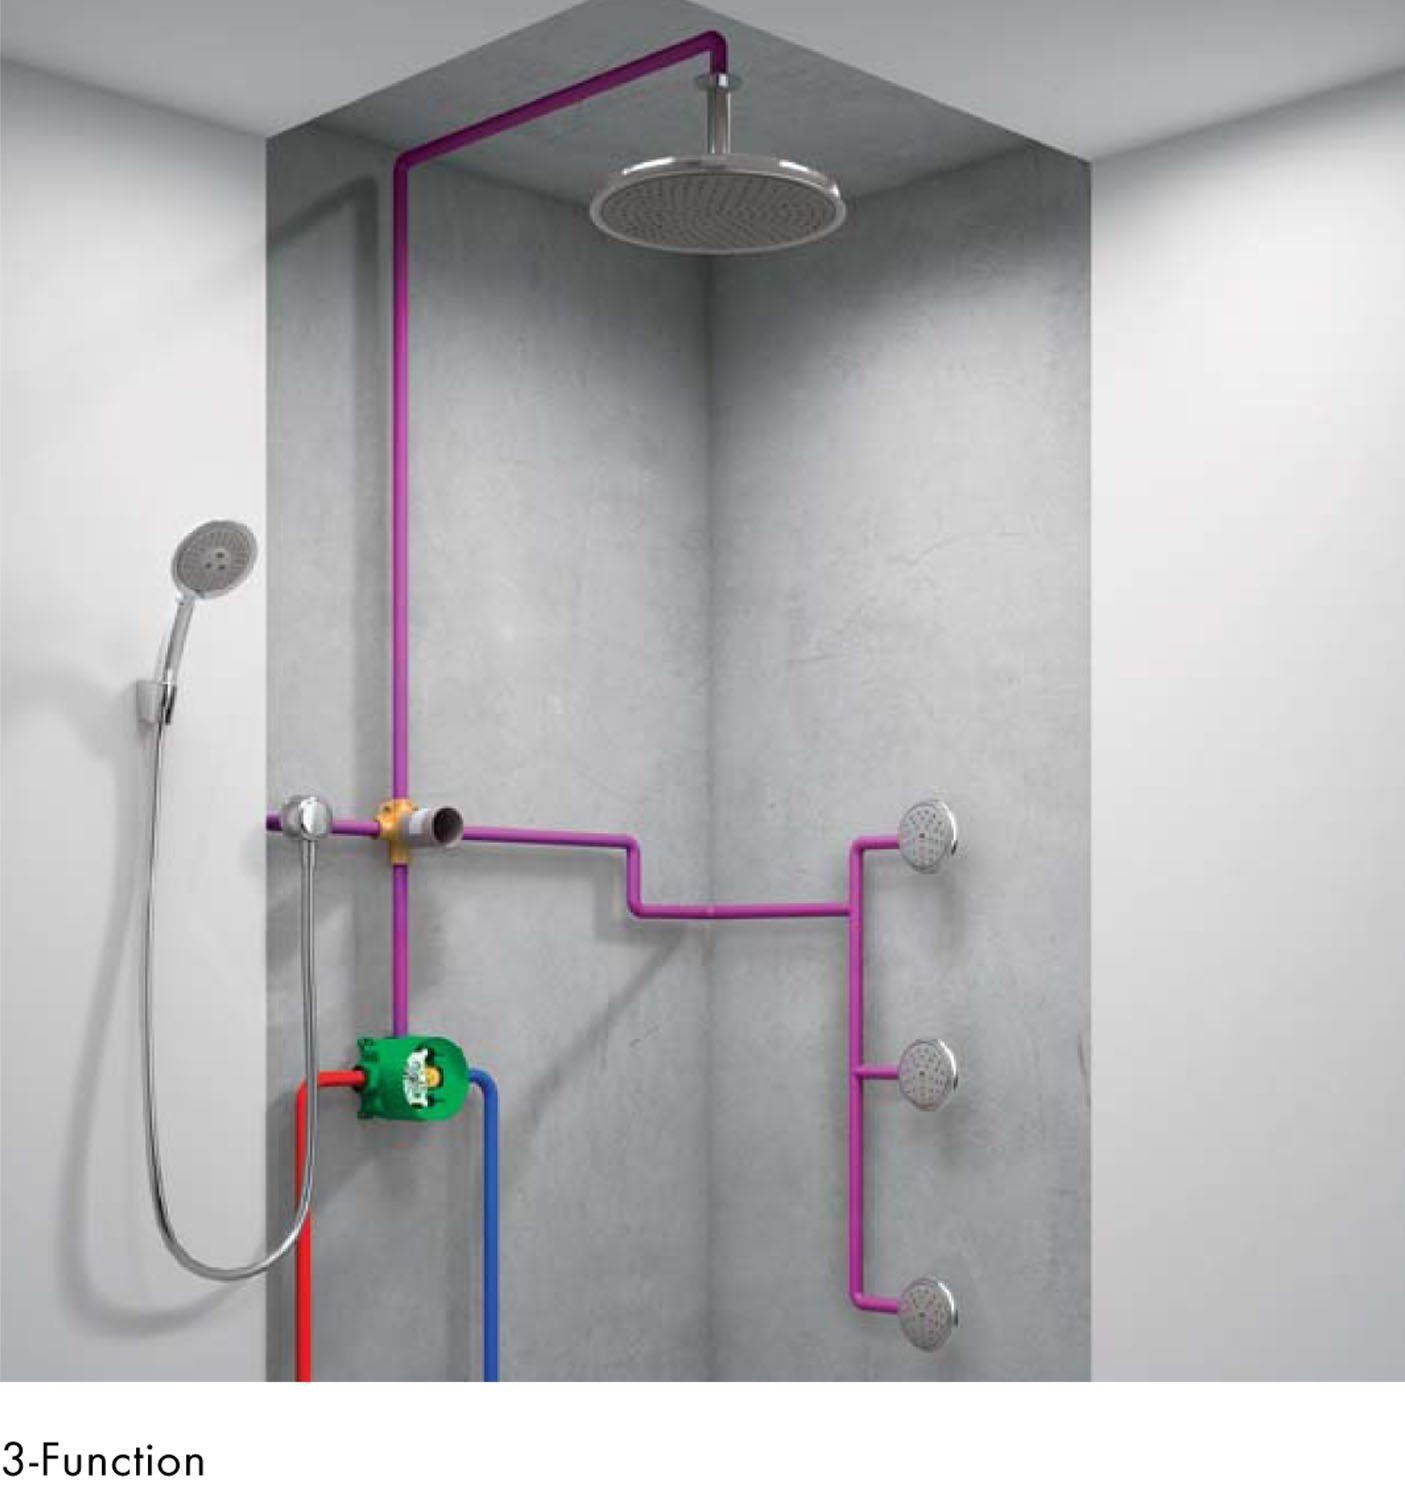 hansgrohe shower head rain shower massage diverter bathroom pinterest rain shower. Black Bedroom Furniture Sets. Home Design Ideas